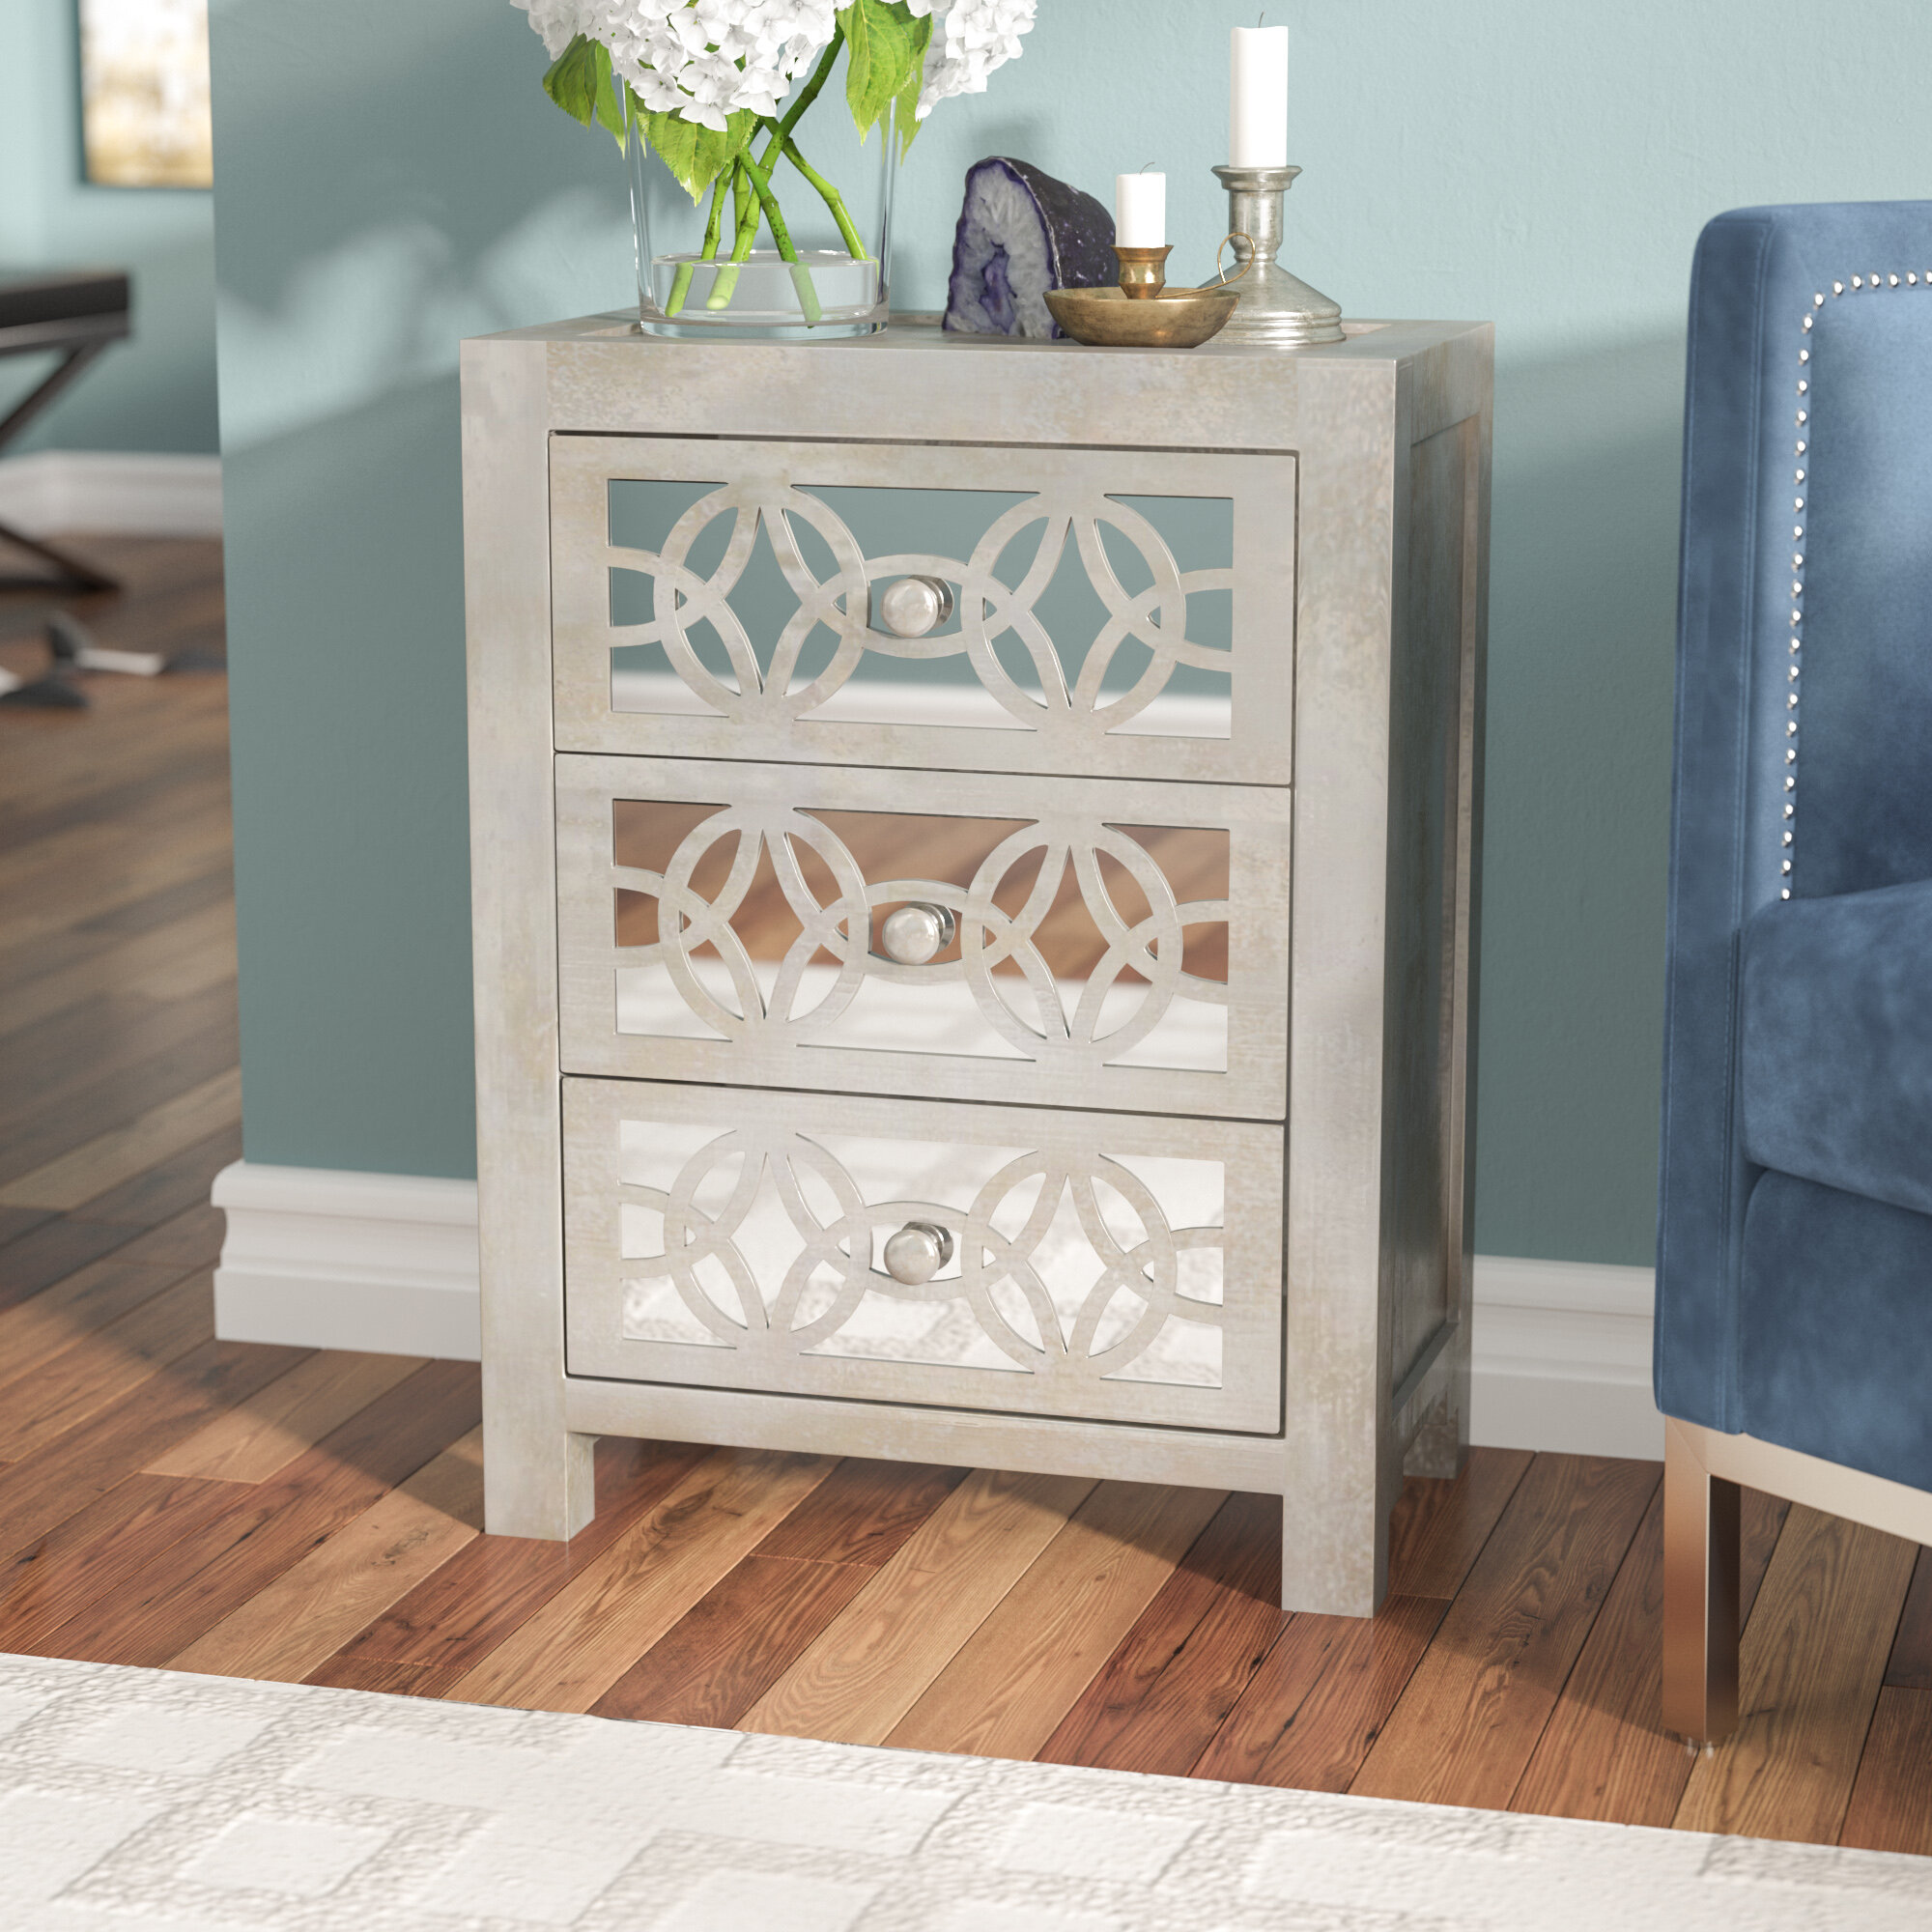 Merveilleux Willa Arlo Interiors Dimattia Mirrored 3 Drawer Accent Chest U0026 Reviews |  Wayfair